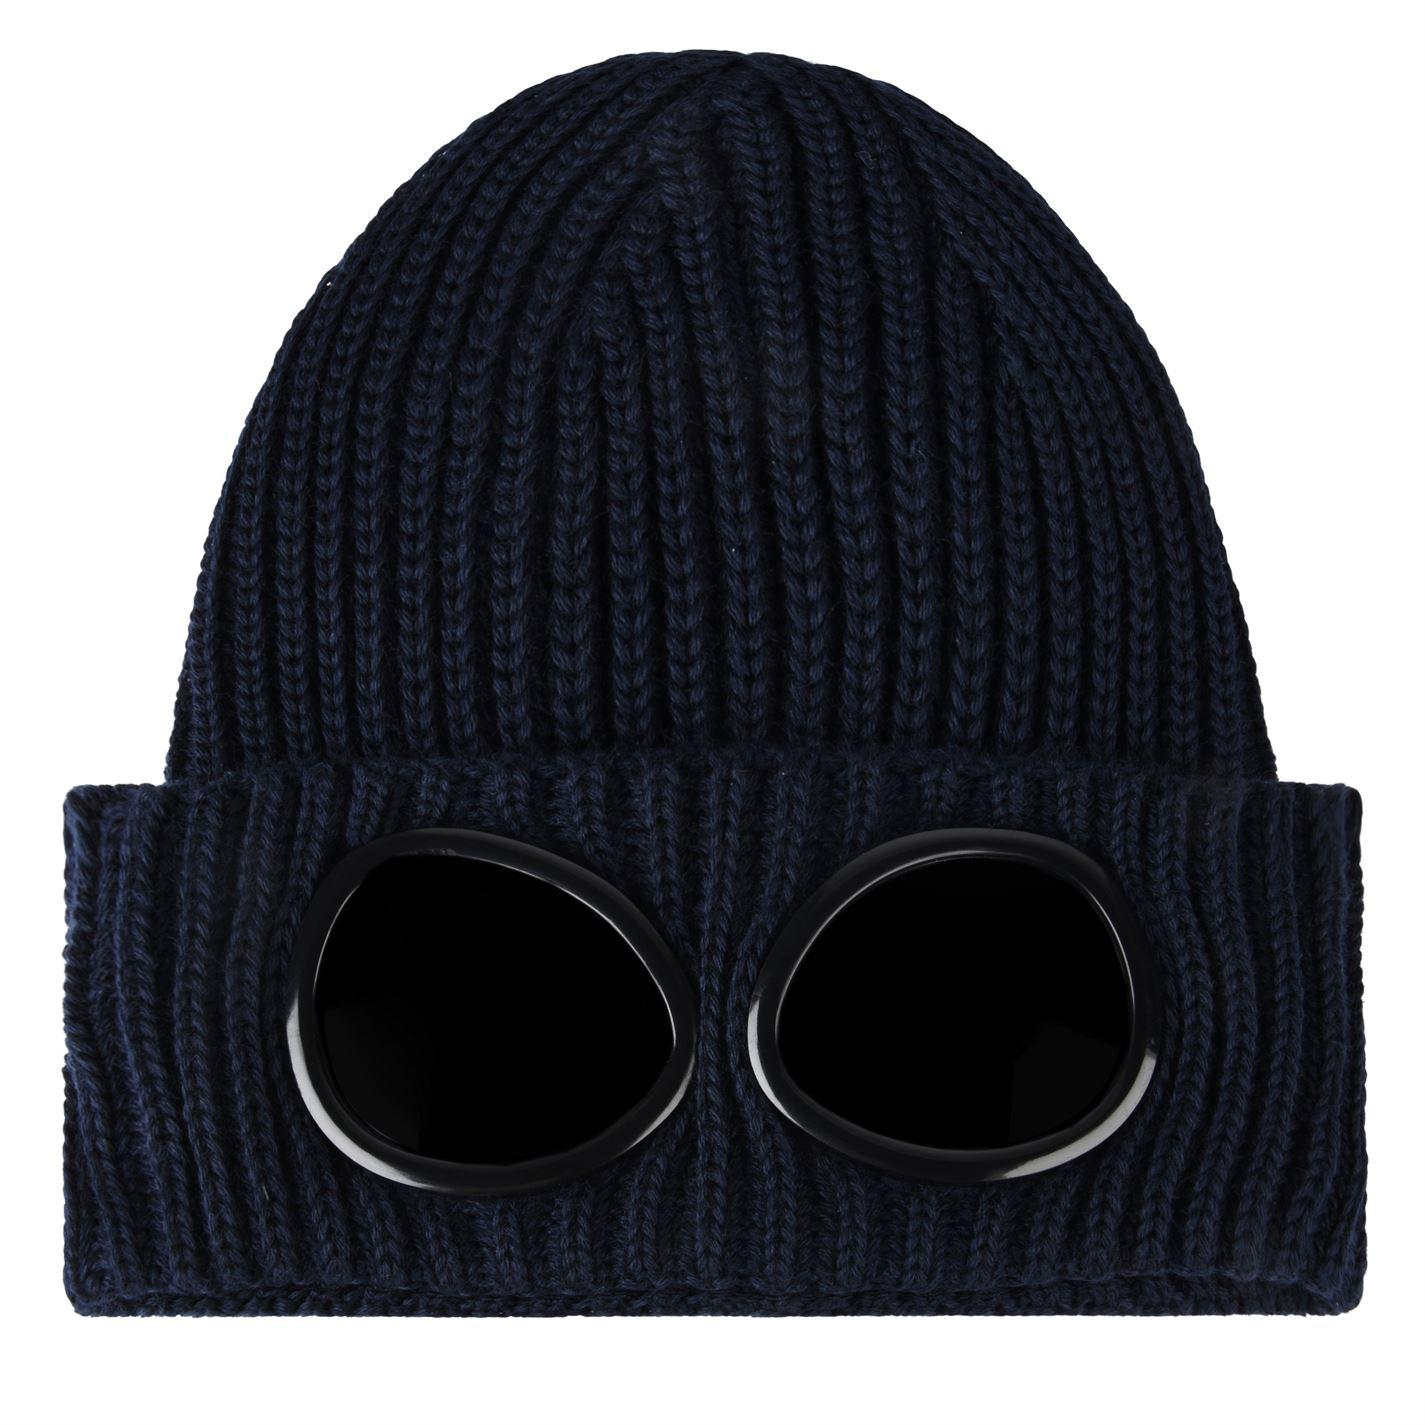 c9dd1691502 C P Company Goggle Knit Hat in Blue for Men - Lyst